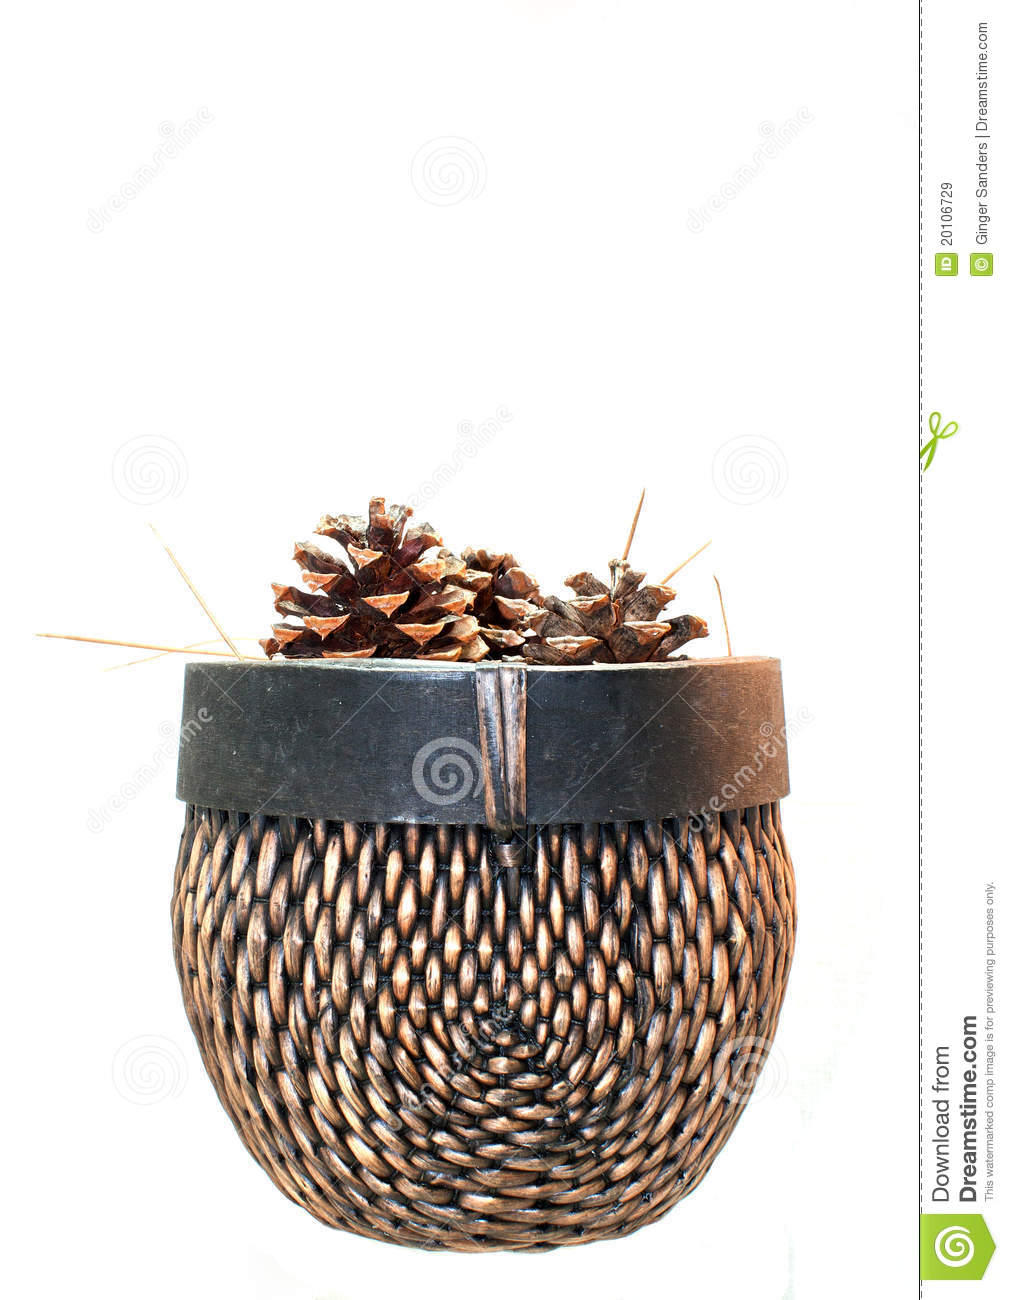 Pinecones in A Woven Basket